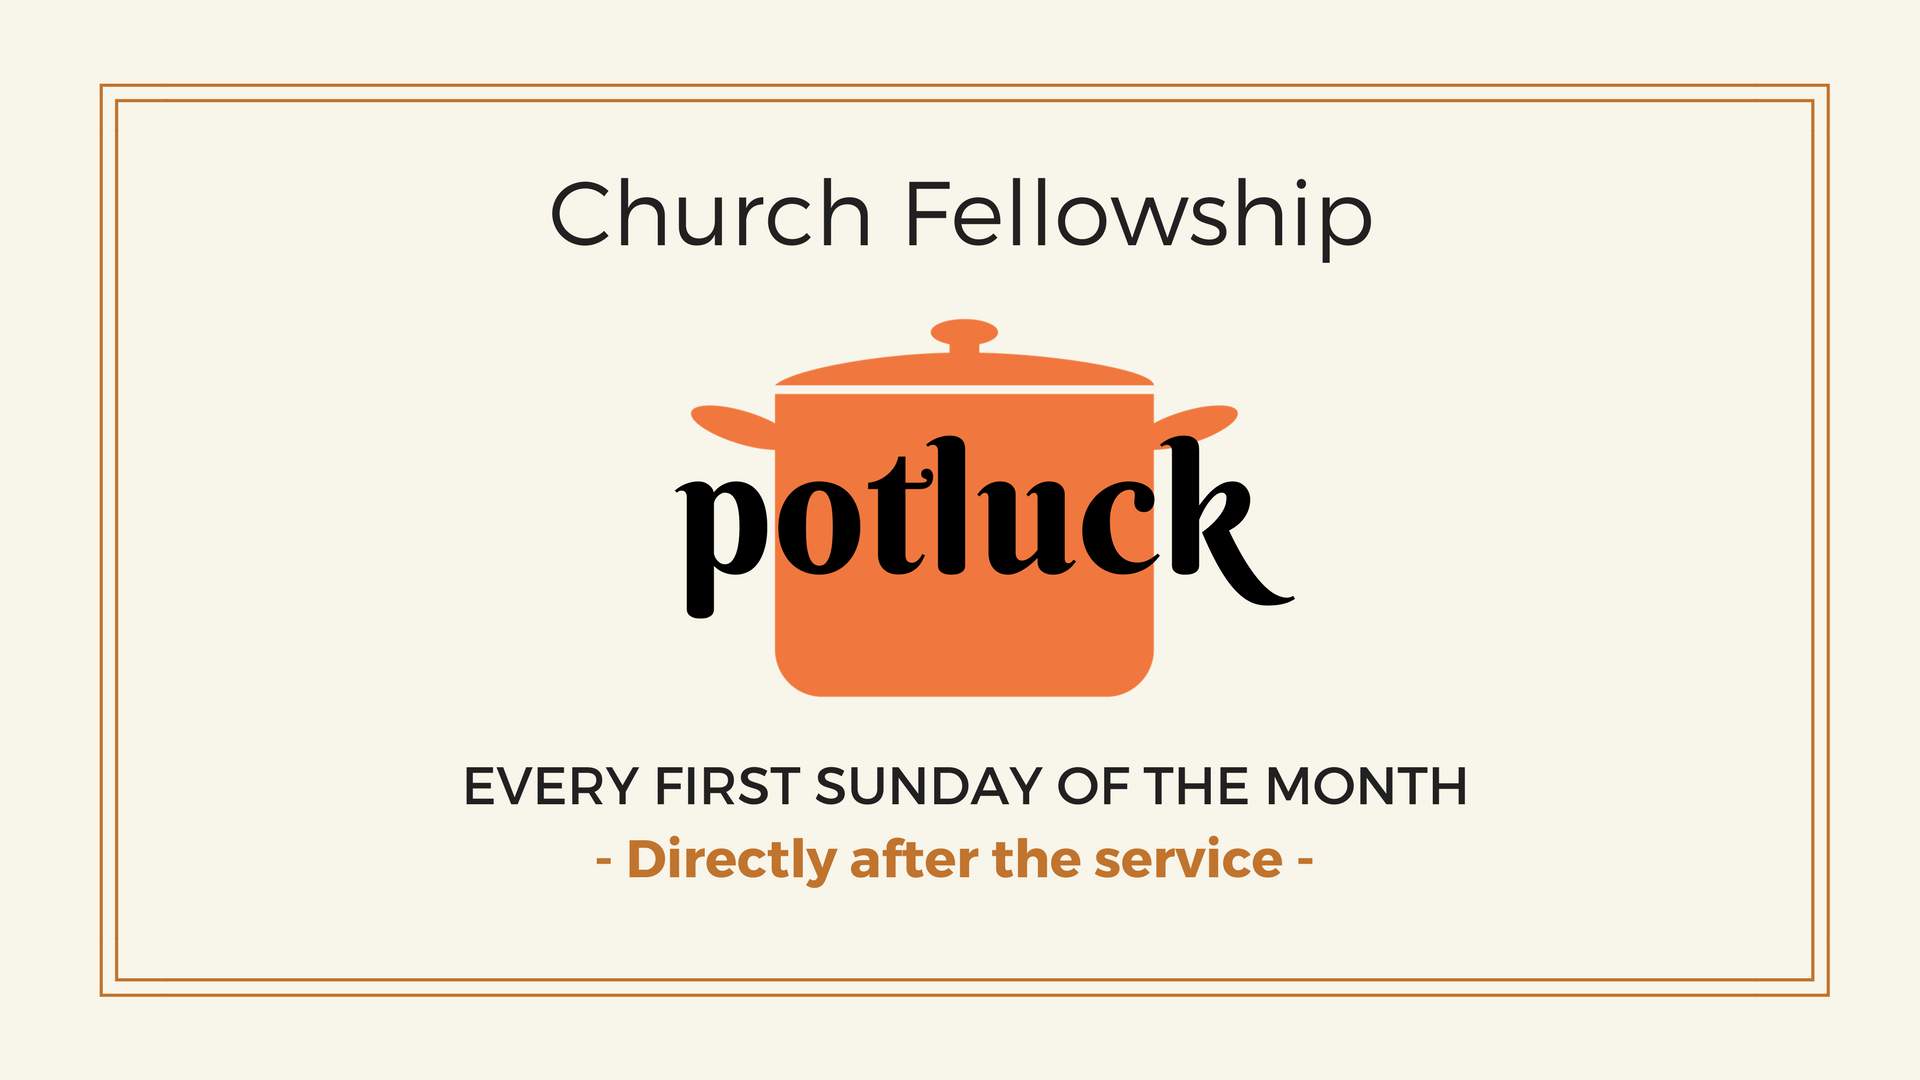 Church potluck 1920x1080